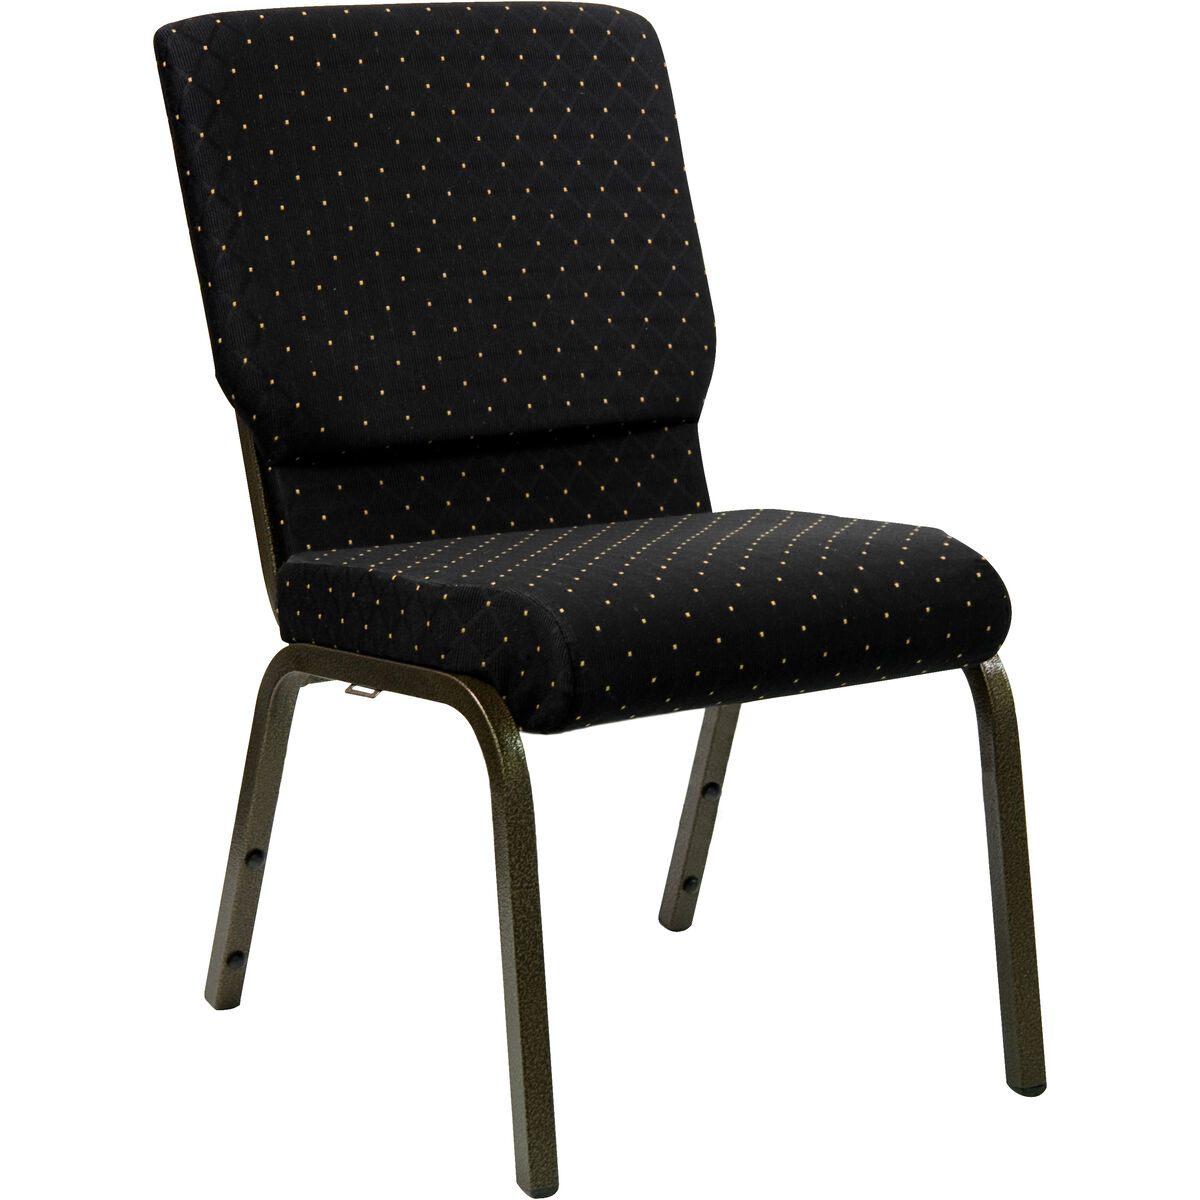 Stacking Church Chair Black Dot Patterned Fabric Gold Metal Frame